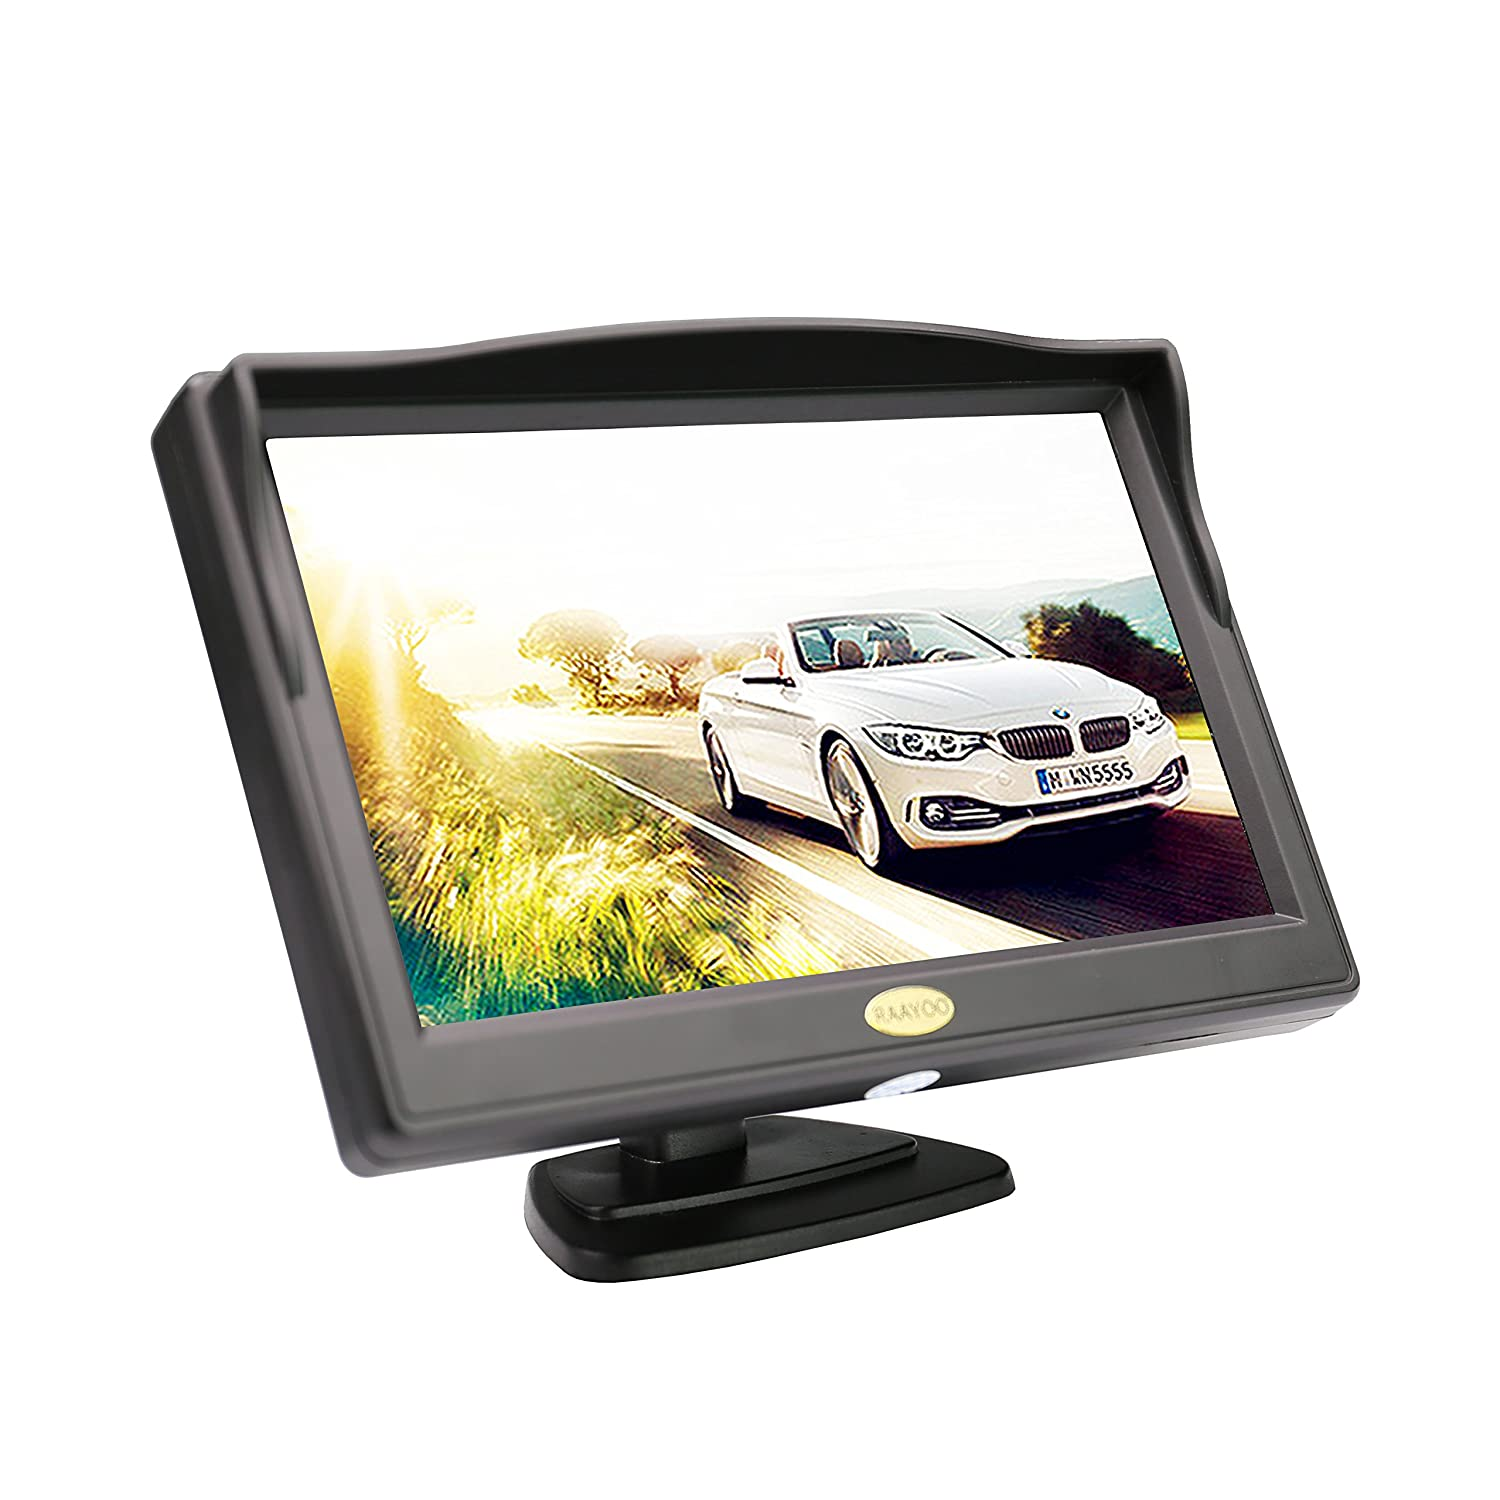 RYS5-001 5 inch-01 Backup Camera Monitor,RAAYOO S5-001 5 inch High Definition TFT LCD Monitor Display Screen for Car Rear View Camera with 2 Optional Bracket,2 Way Video Input,12V//24V